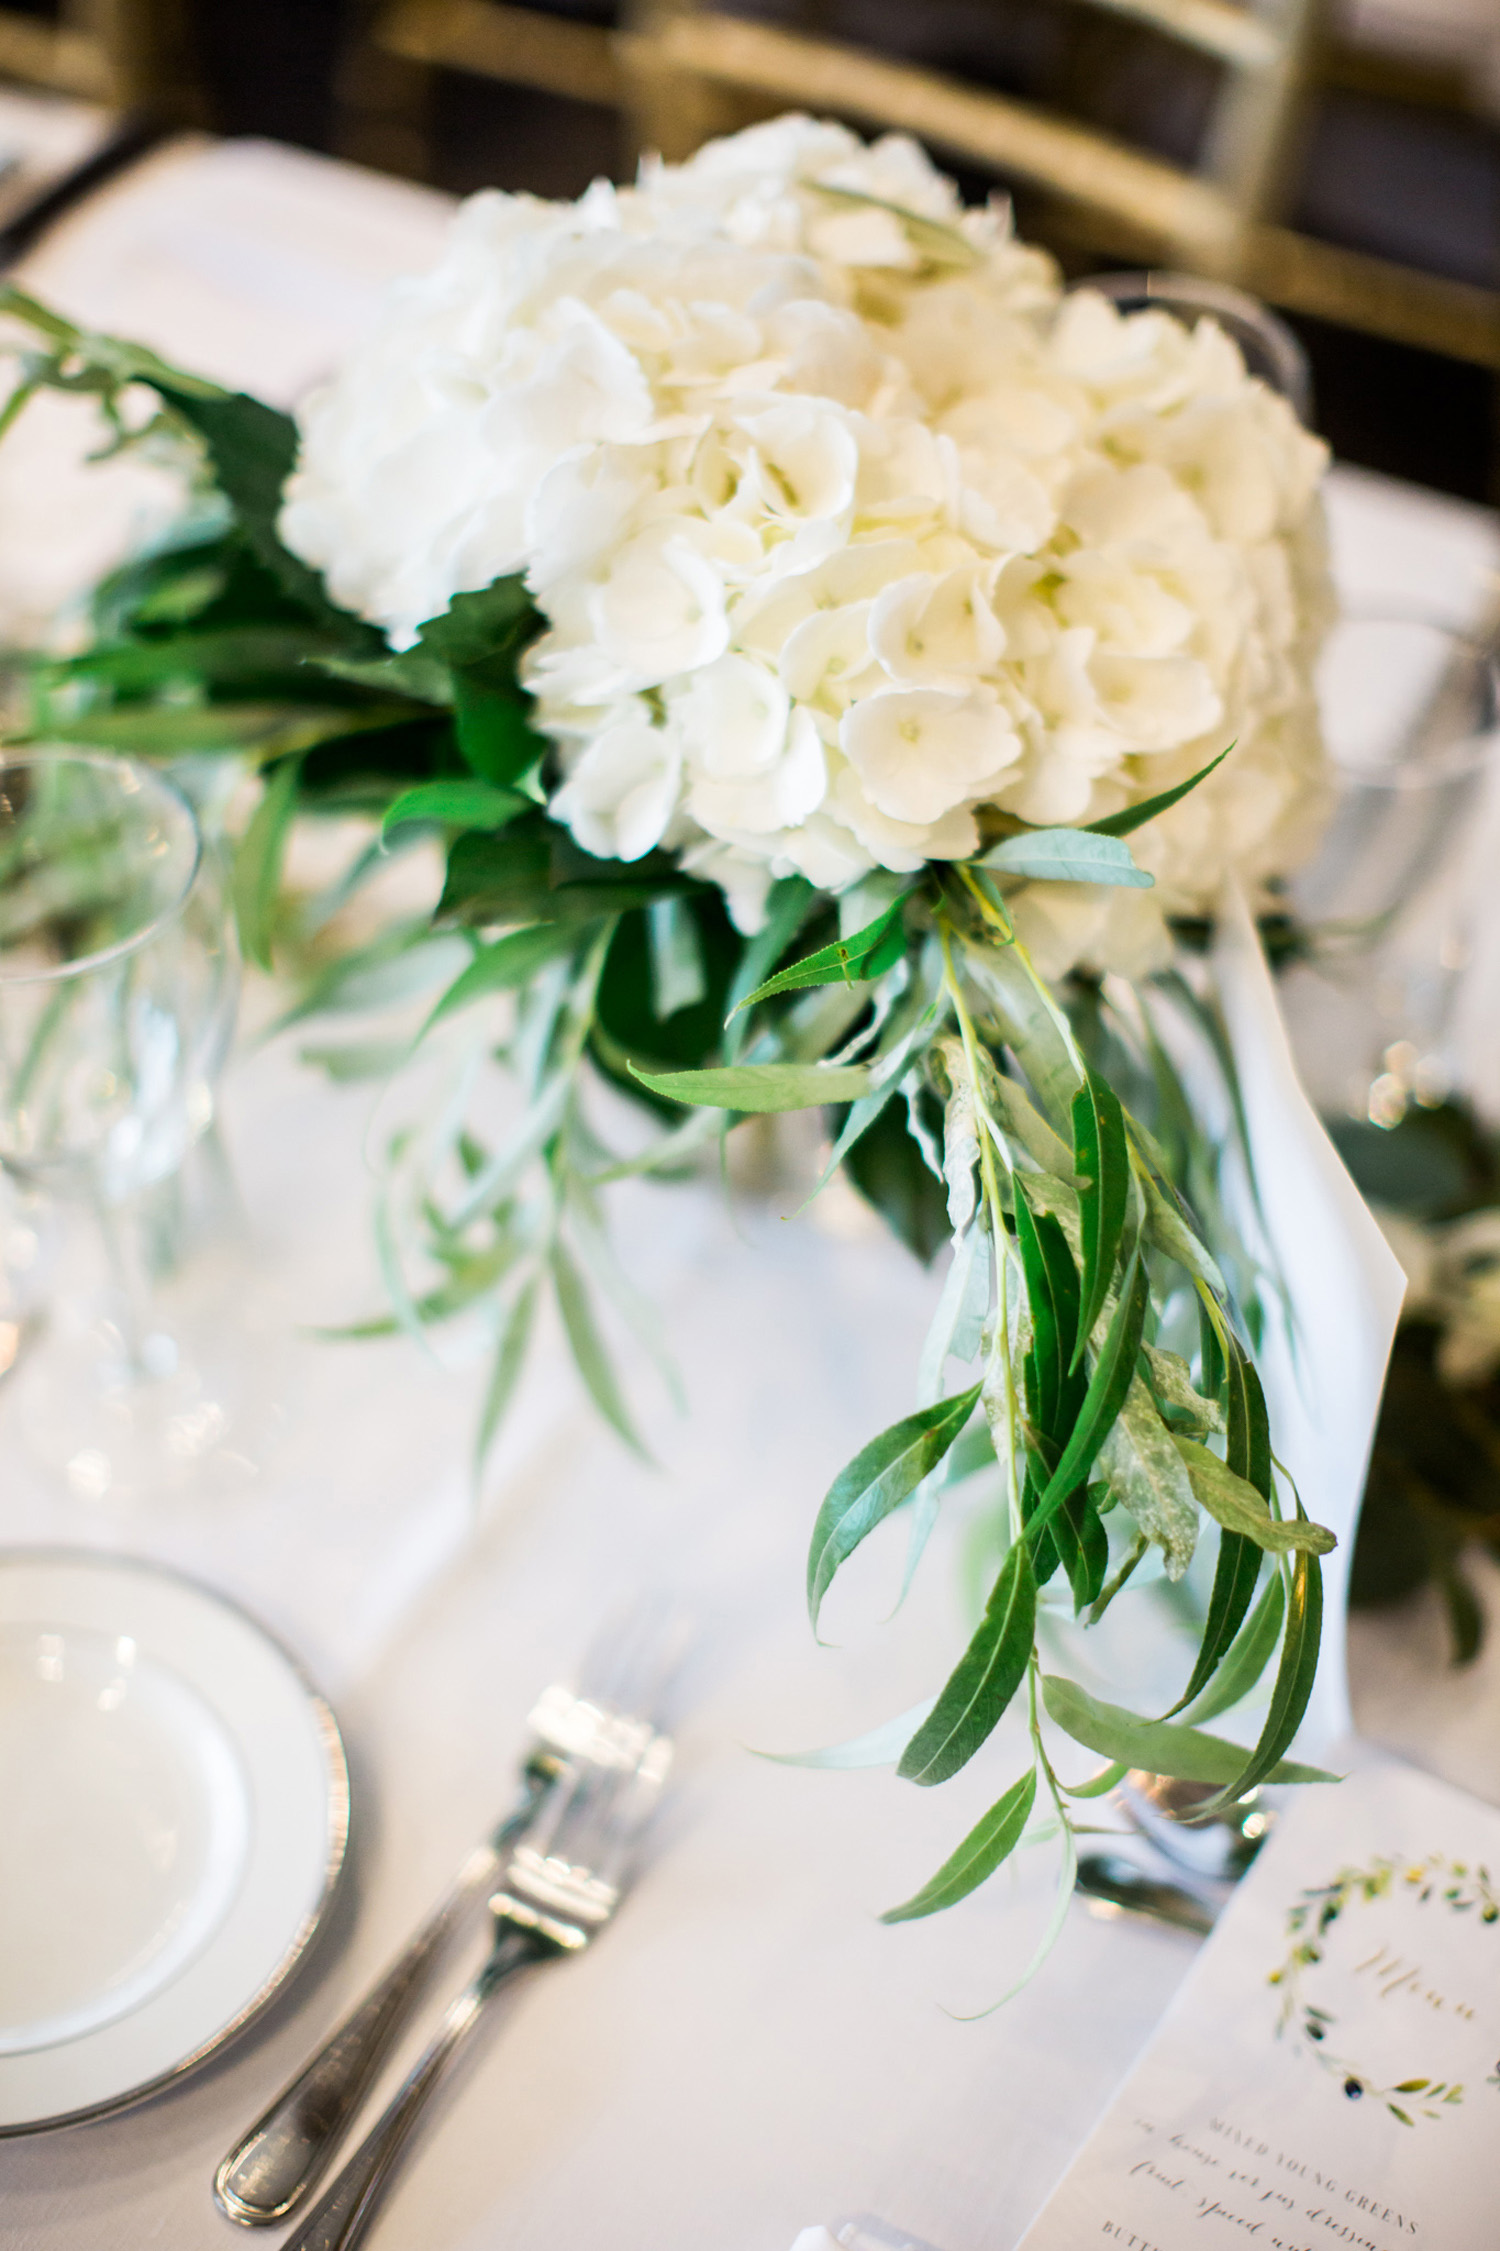 Mike Weir Winery | Jesse Jonas Photography | Centrepieces